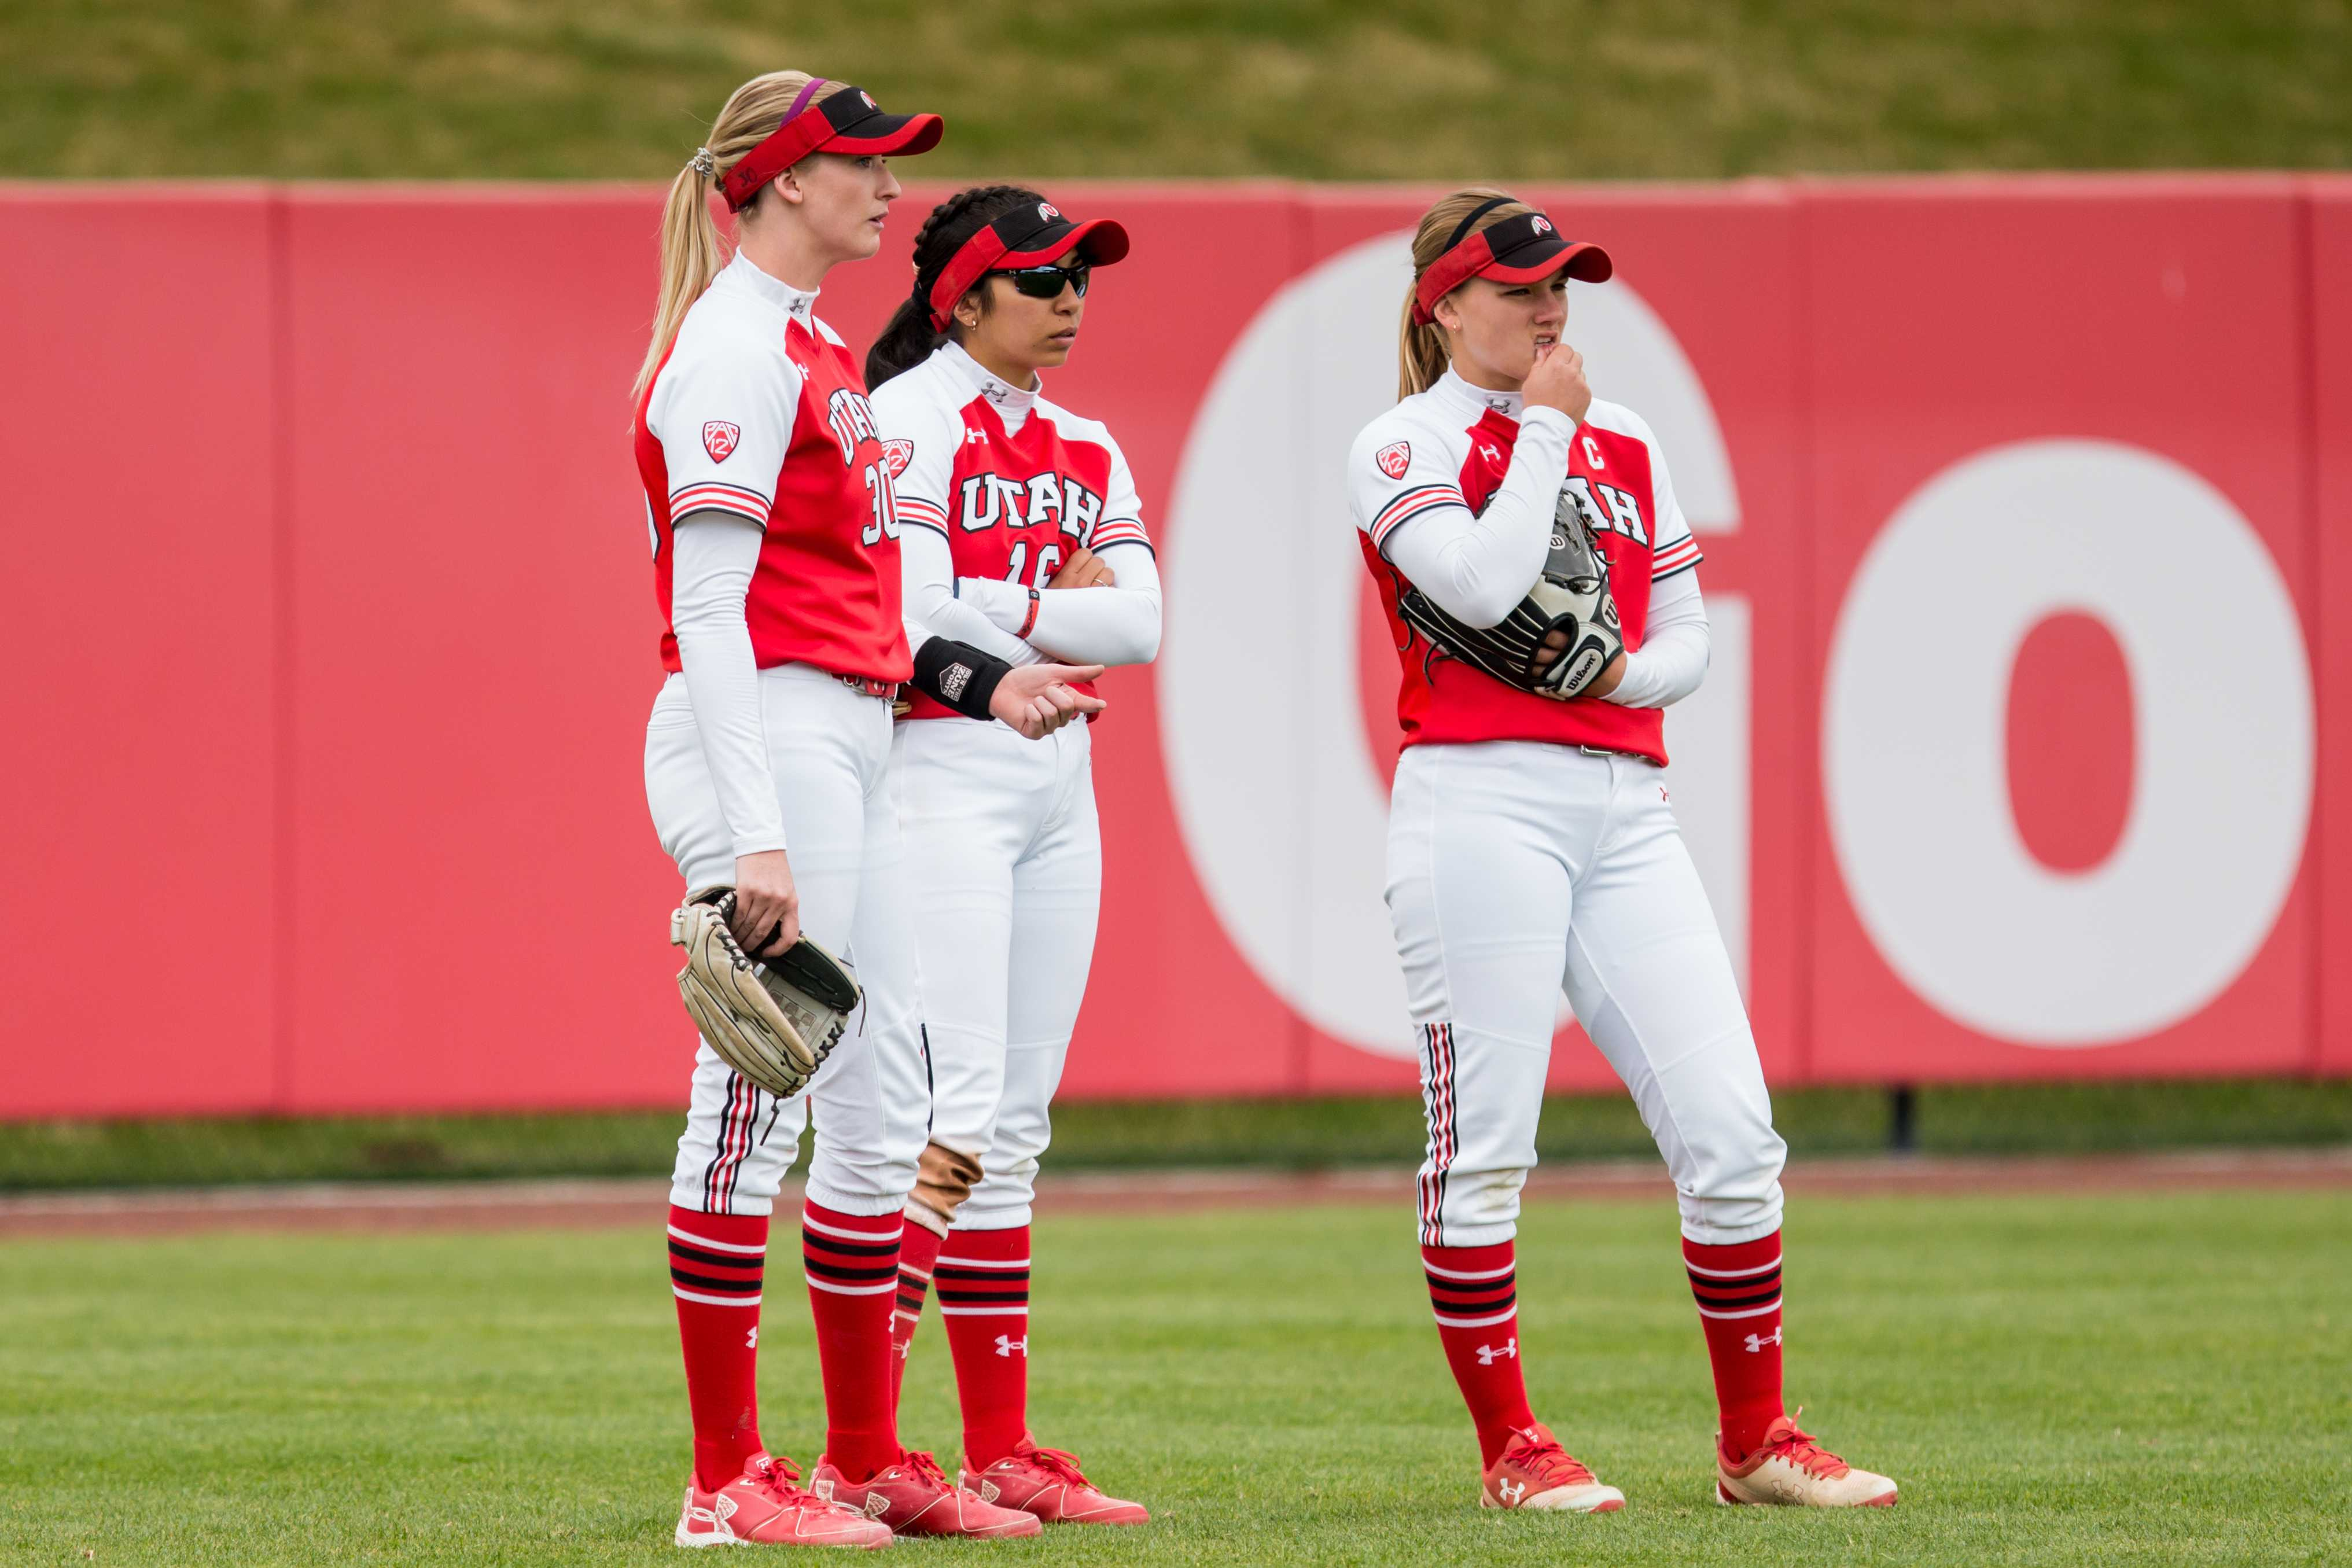 The University of Utah Softball Team's outfielders huddled up in an NCAA Softball game vs. Arizona at Dumke Family Softball Field in Salt Lake City, UT on Saturday April 06, 2019.  (Photo by Curtis Lin | Daily Utah Chronicle)